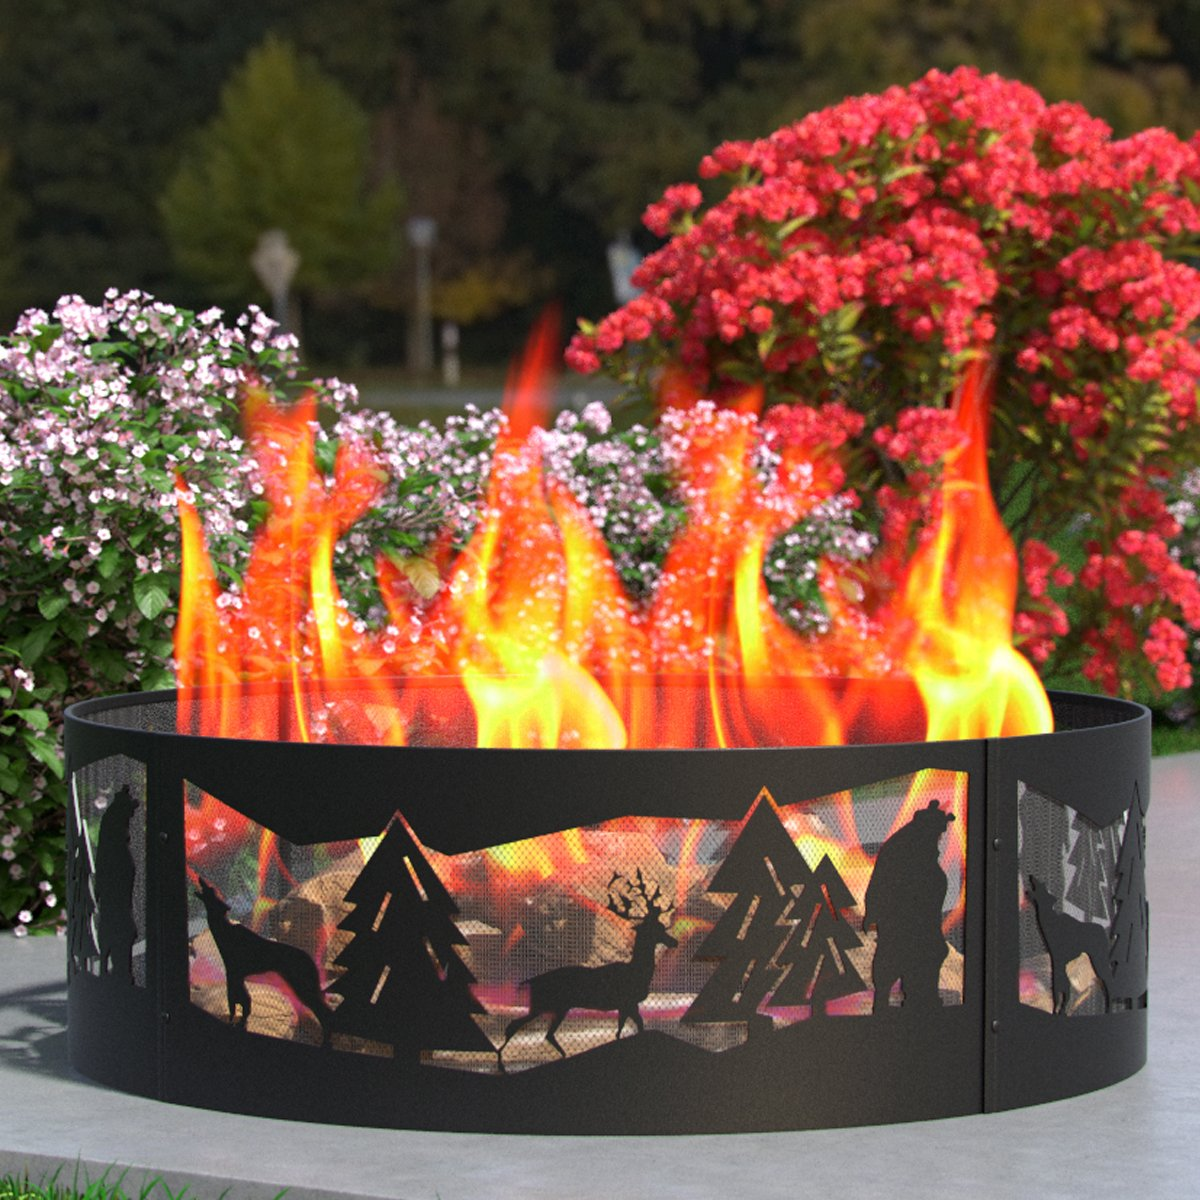 Wilderness 36 Inch Backyard Garden Home Running Horse Light Wood Fire Pit Fire Ring. For RV, Camping, and Outdoor Fireplace. Works as Firewood Patio Heater, Stove or Firebowl without Propane Gas by Regal Flame